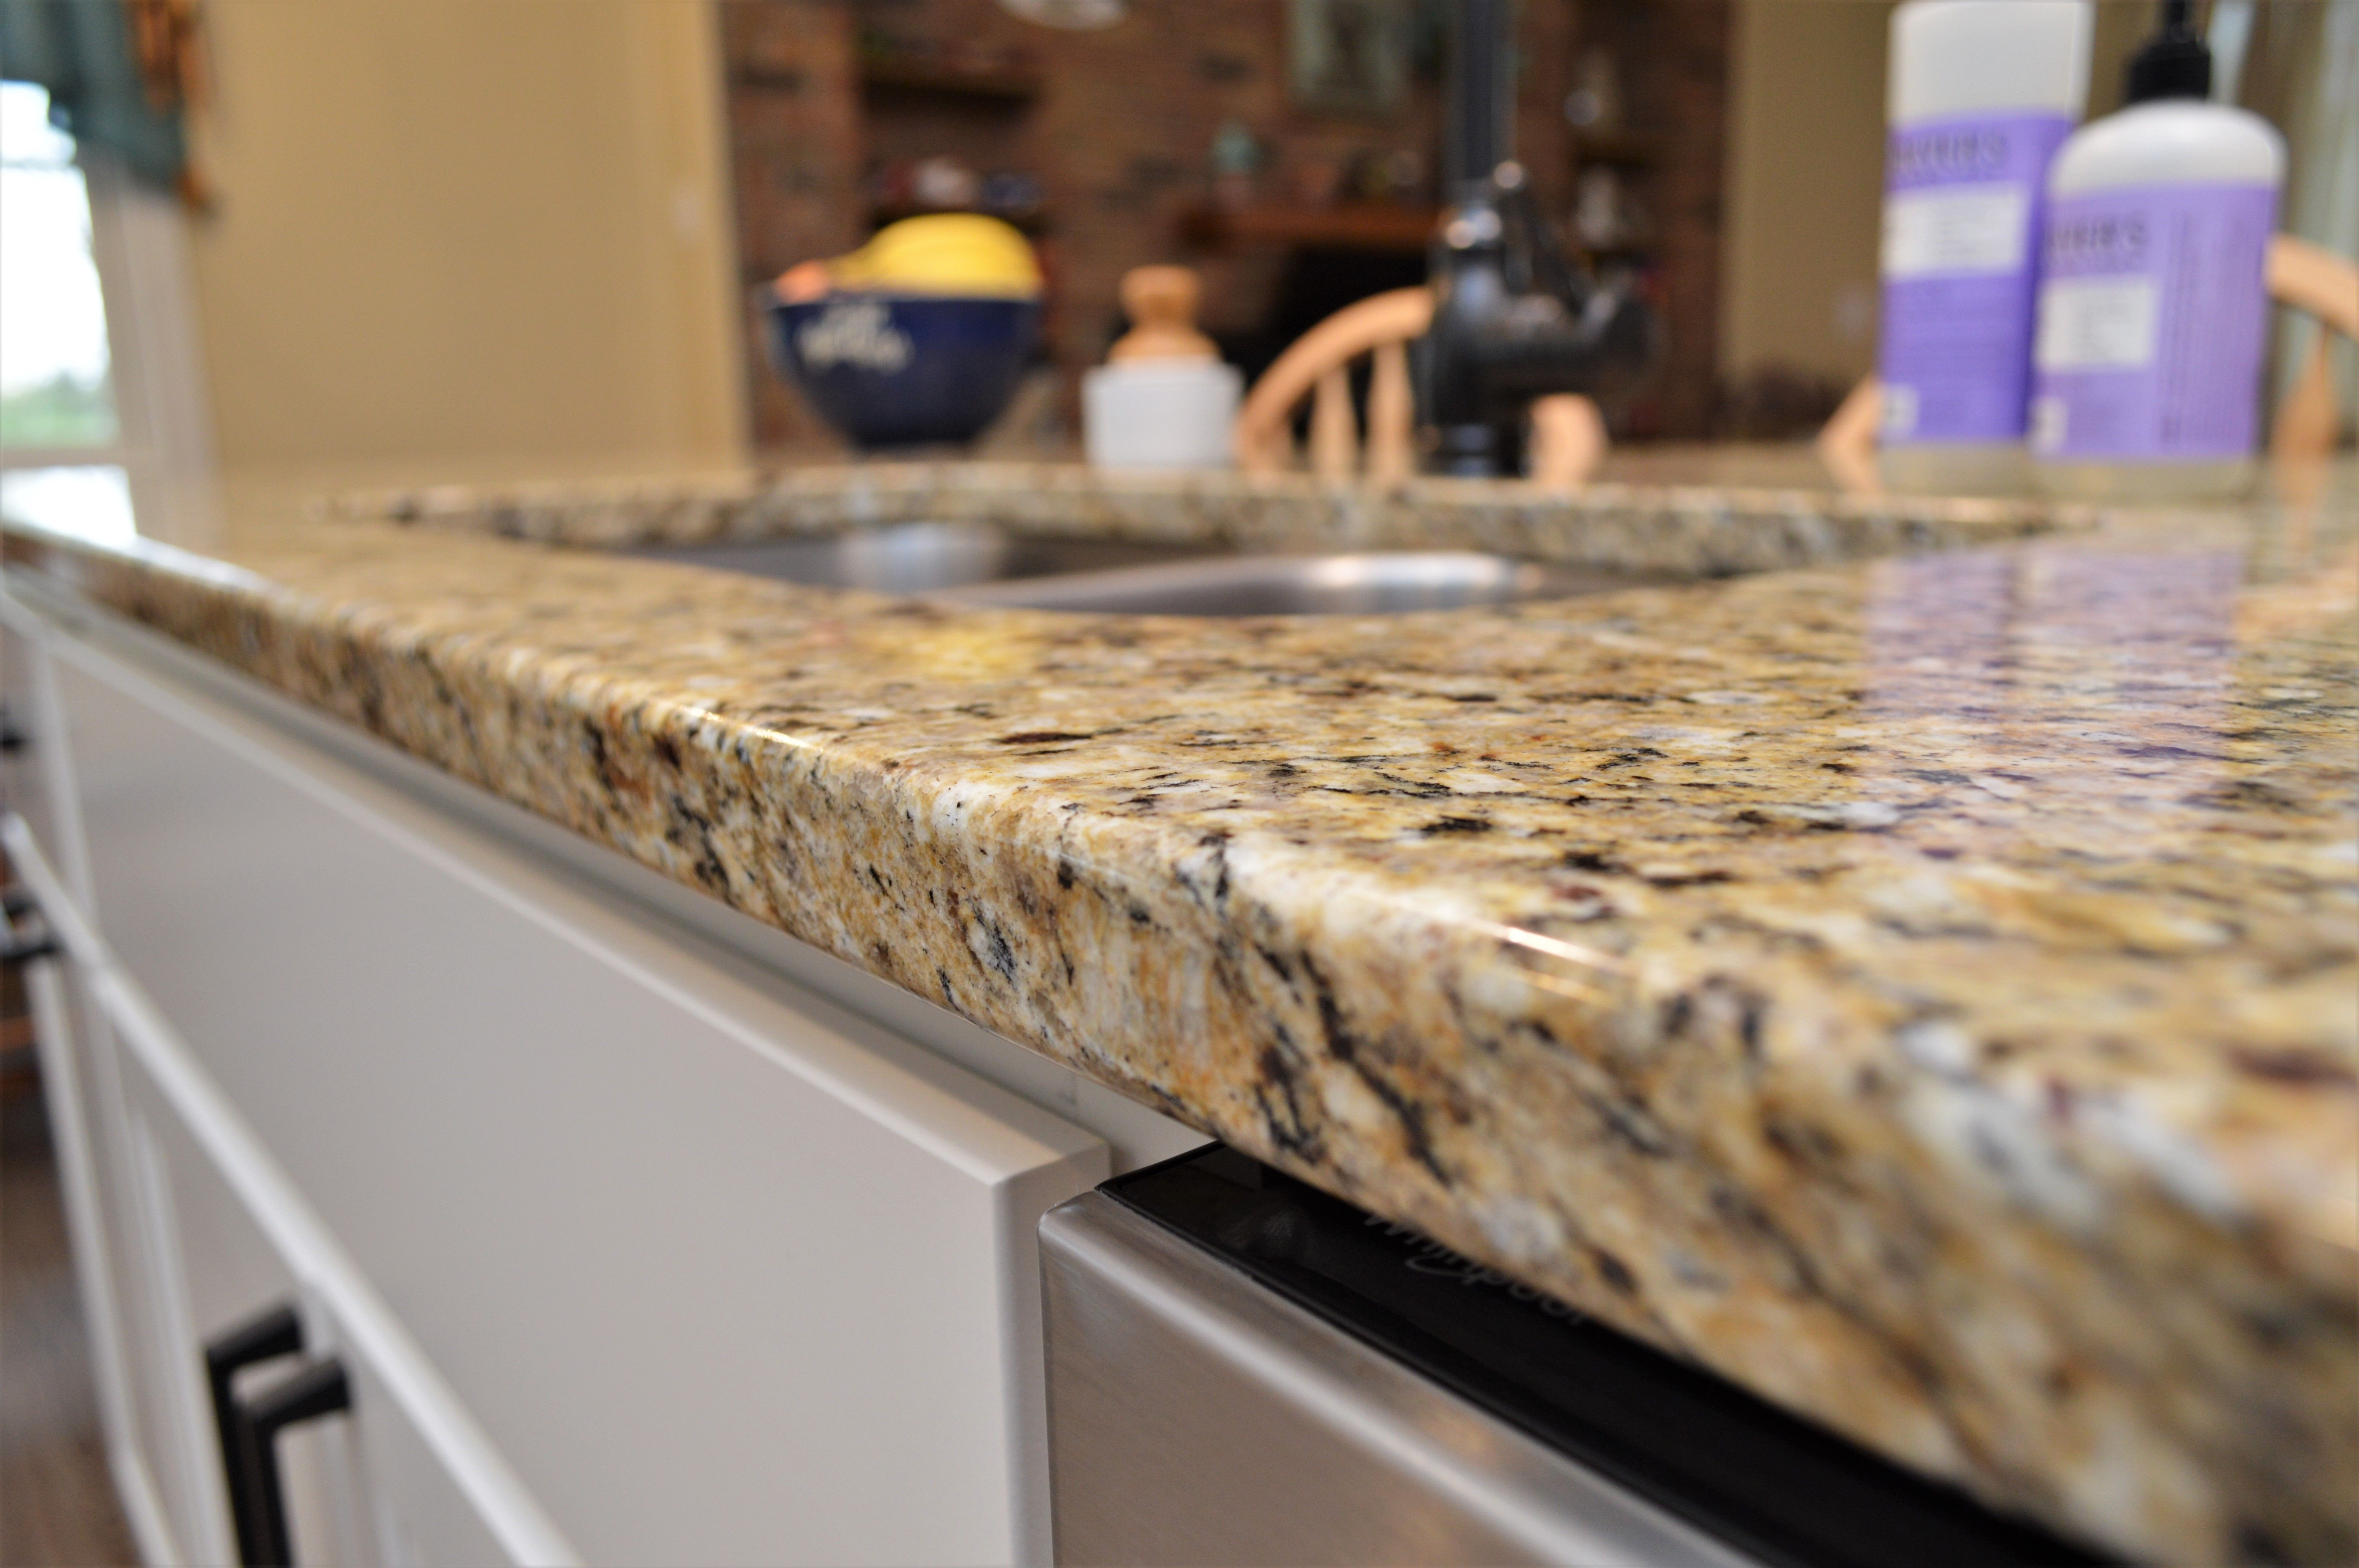 Bailey S Cabinets Granite Counter Top Double Radius Edge Detail Silicone Back Splash New Venetian Gold Col